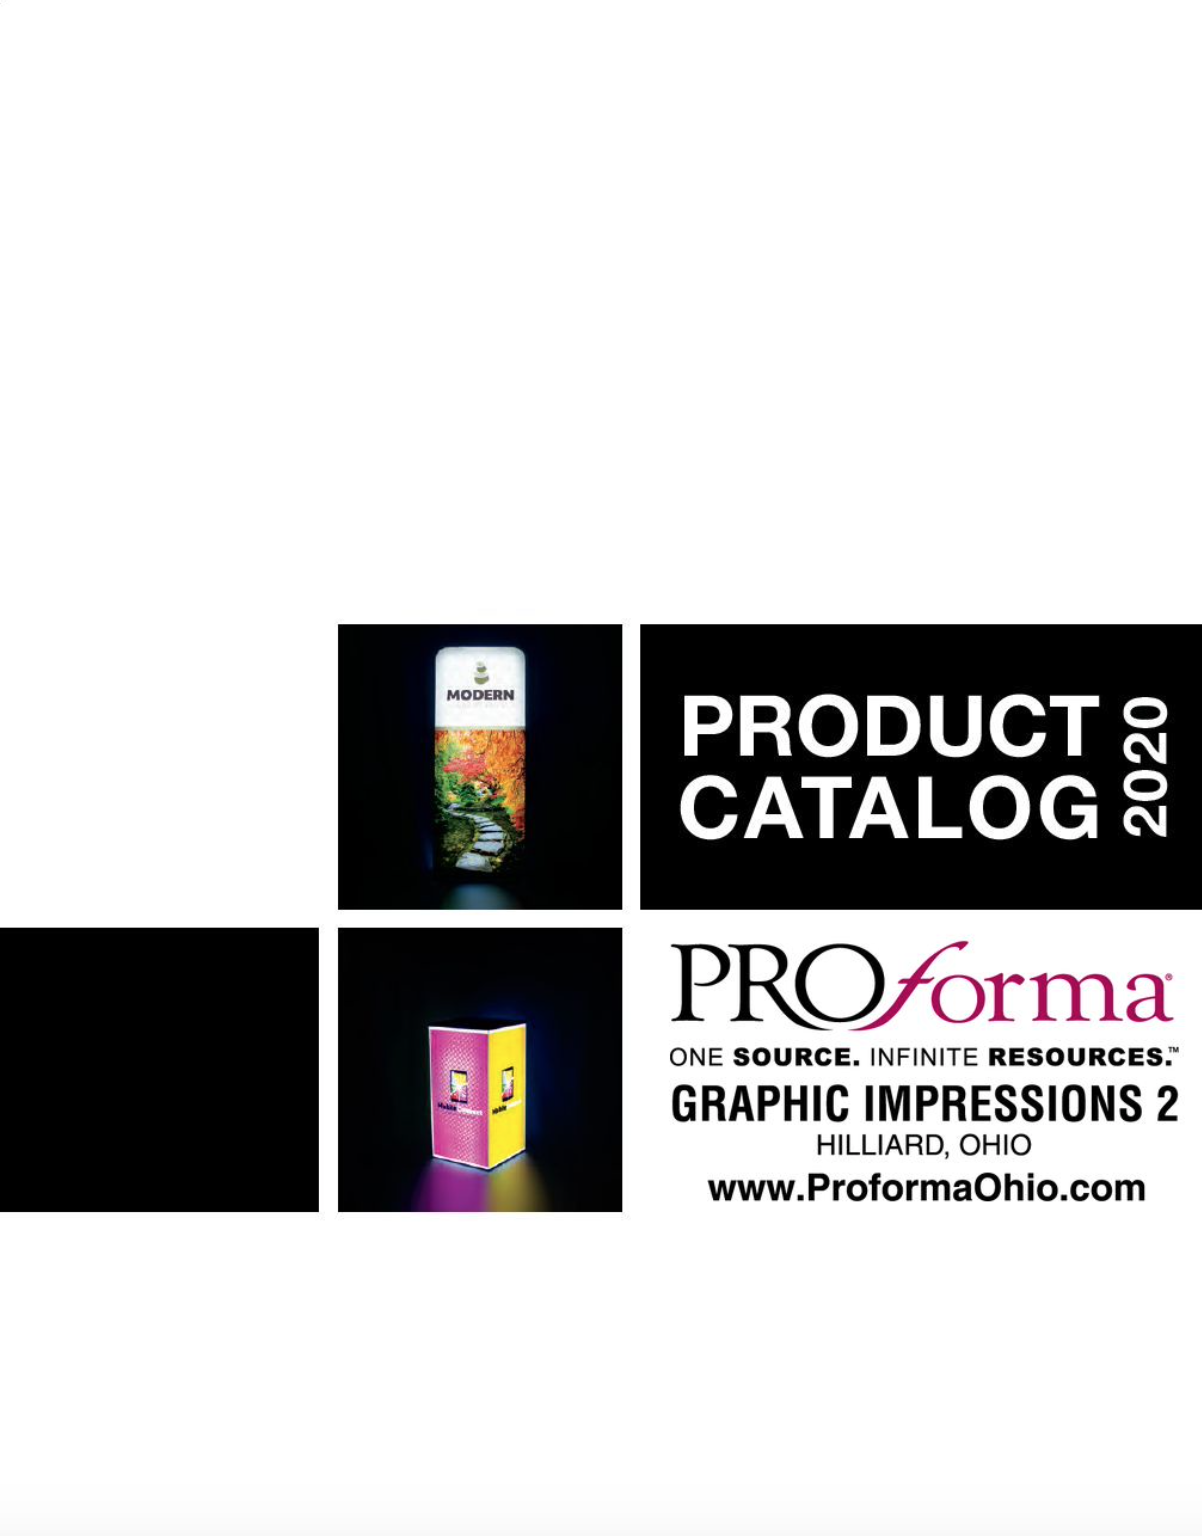 customizable promotional products in Ohio